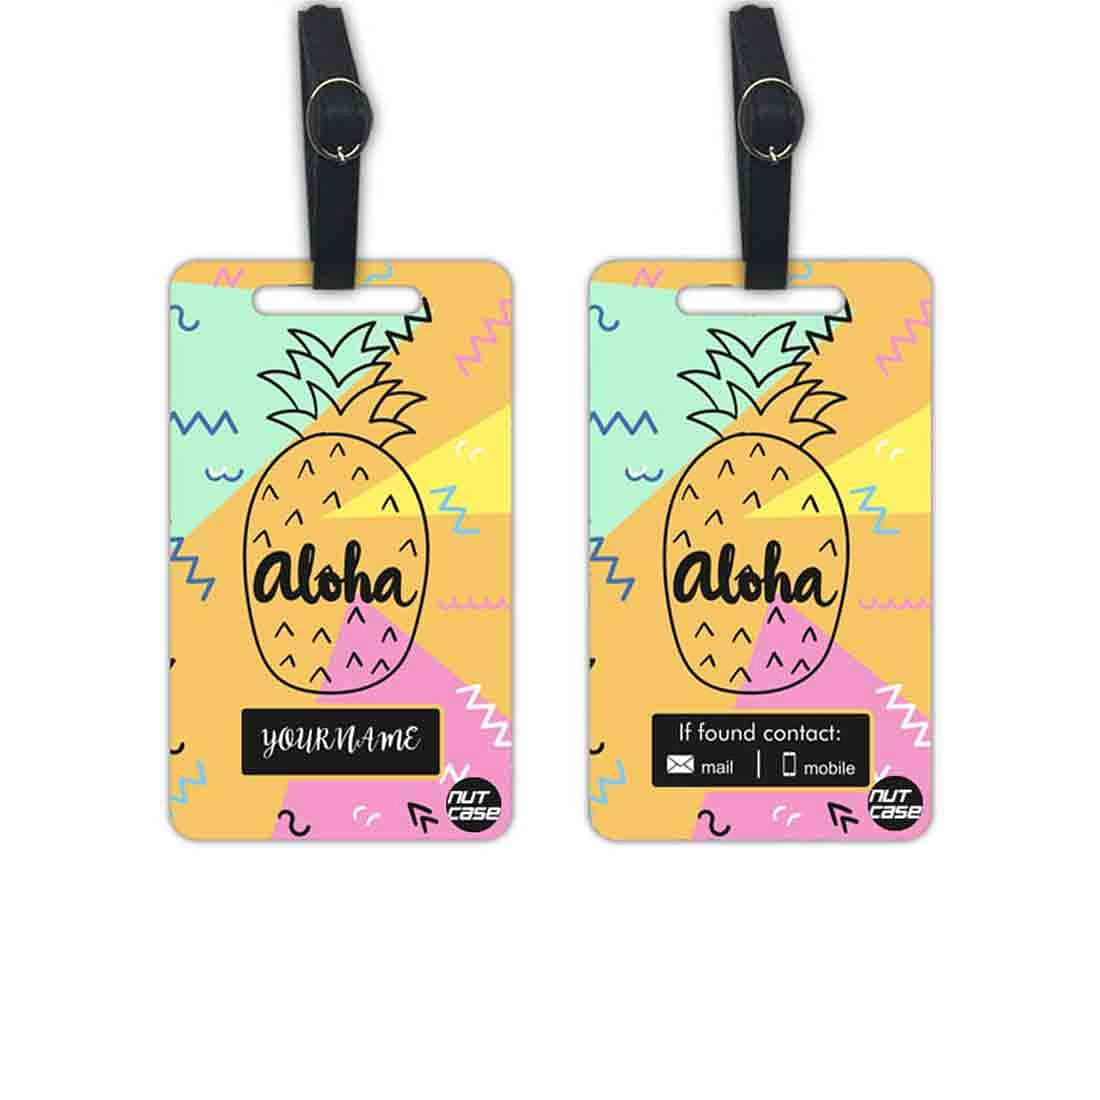 Custom Printed Luggage Tags - Add your Name - Set of 2